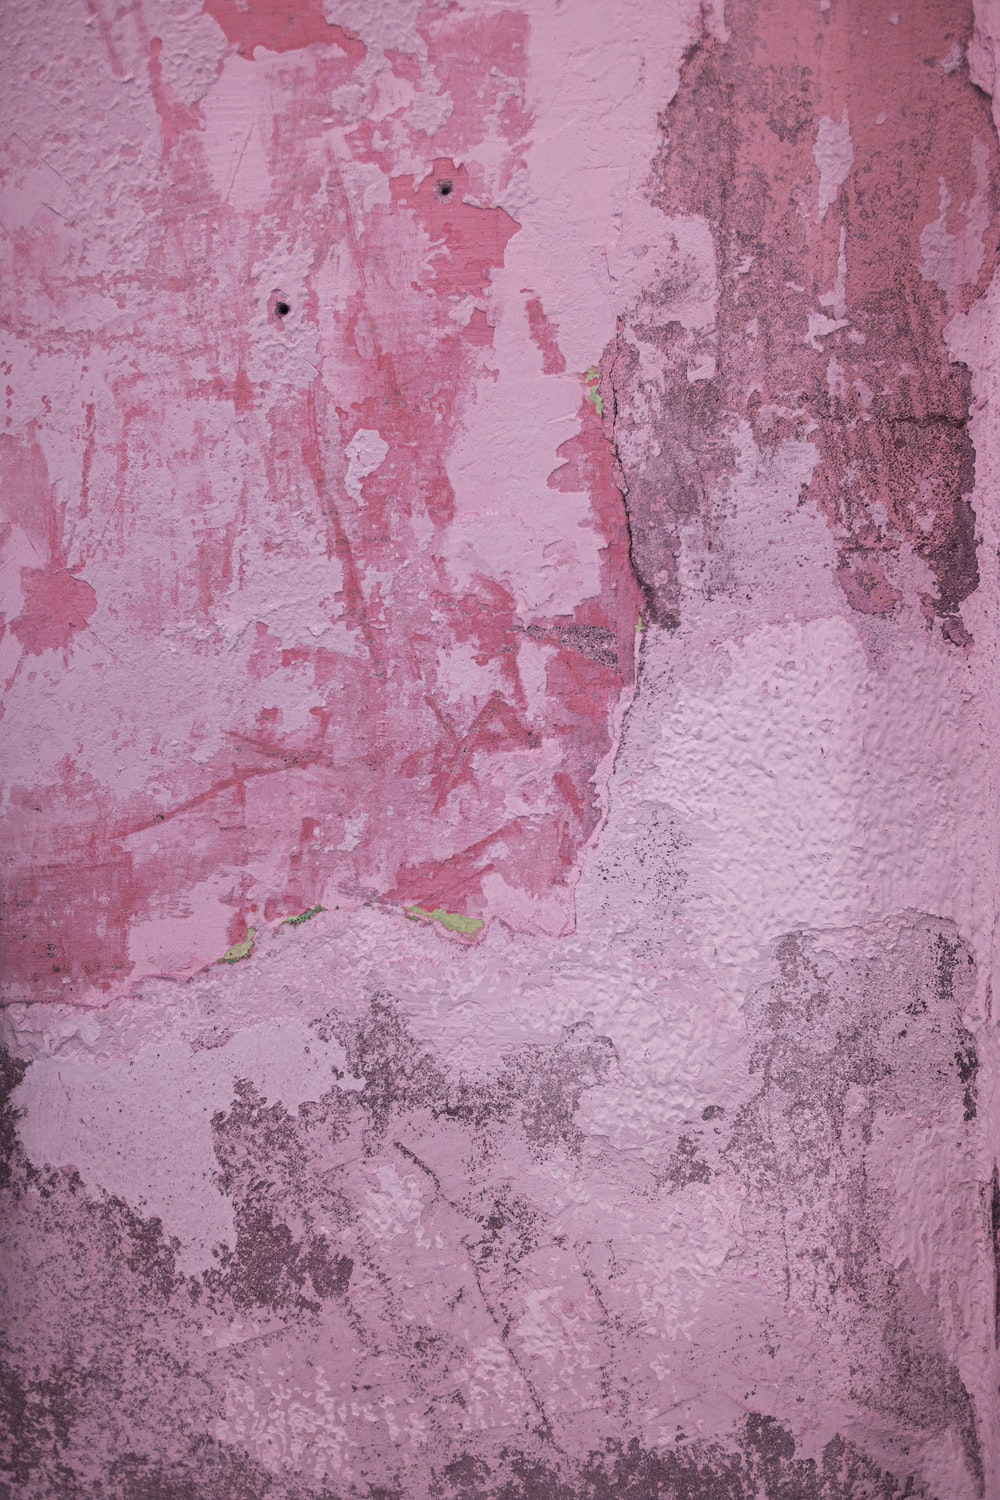 pink and white painted wall